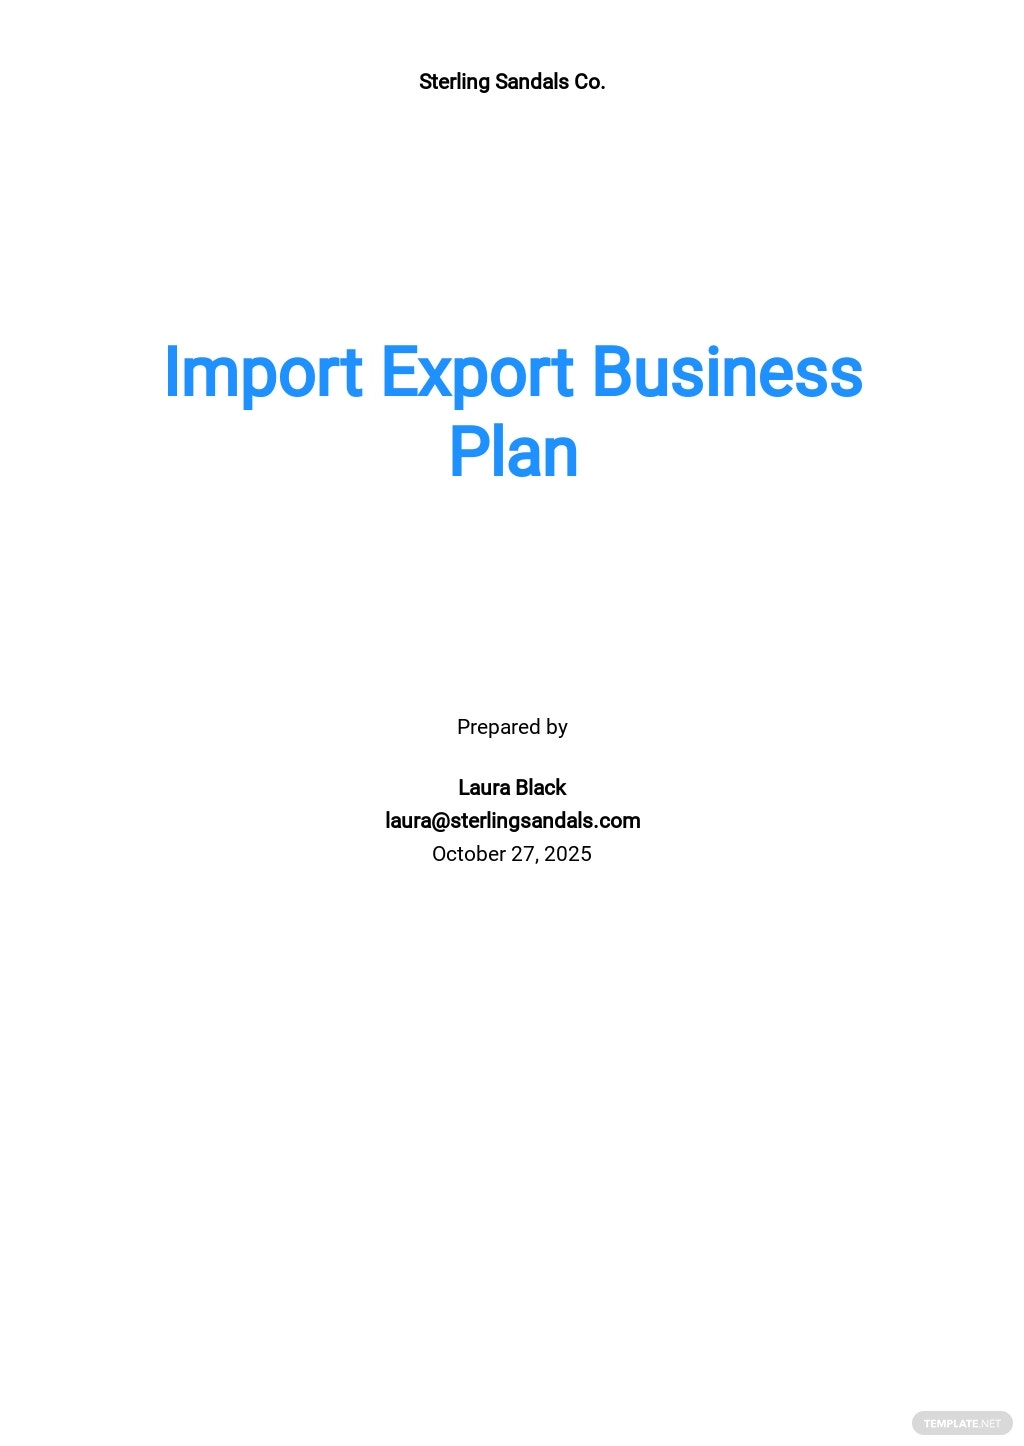 Import Export Business Plan Template